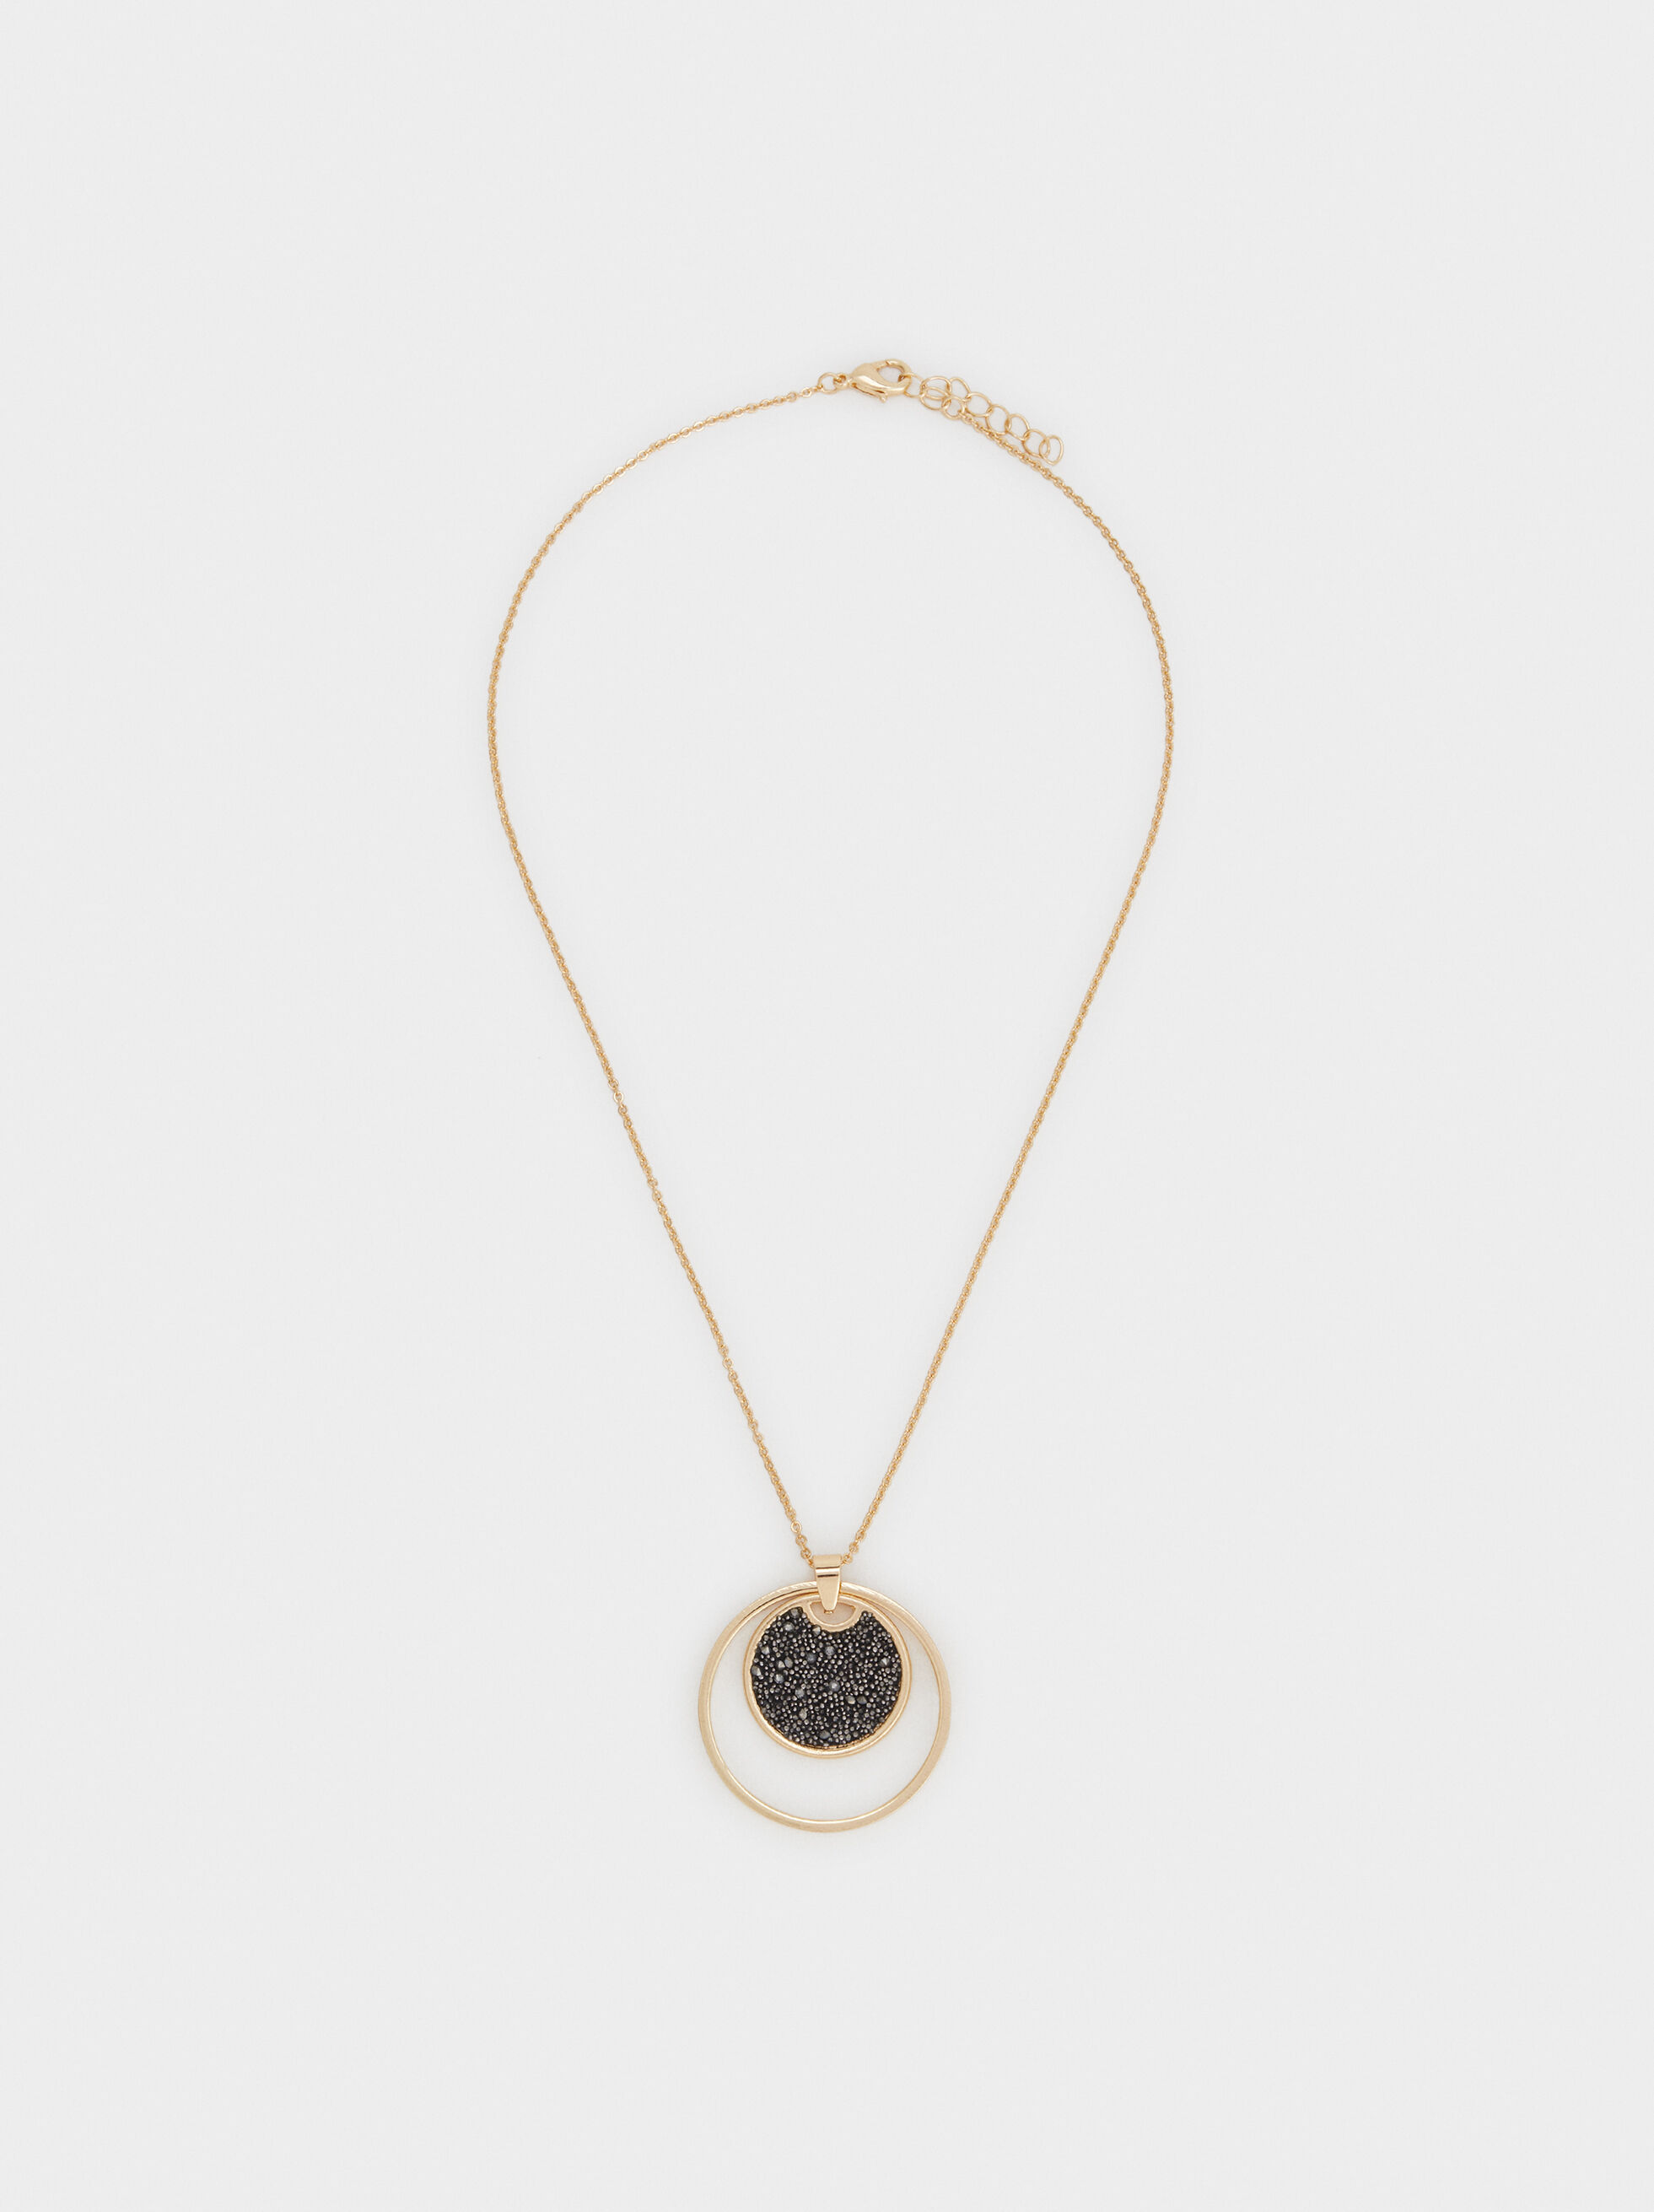 Short Necklace With Pendant, Multicolor, hi-res